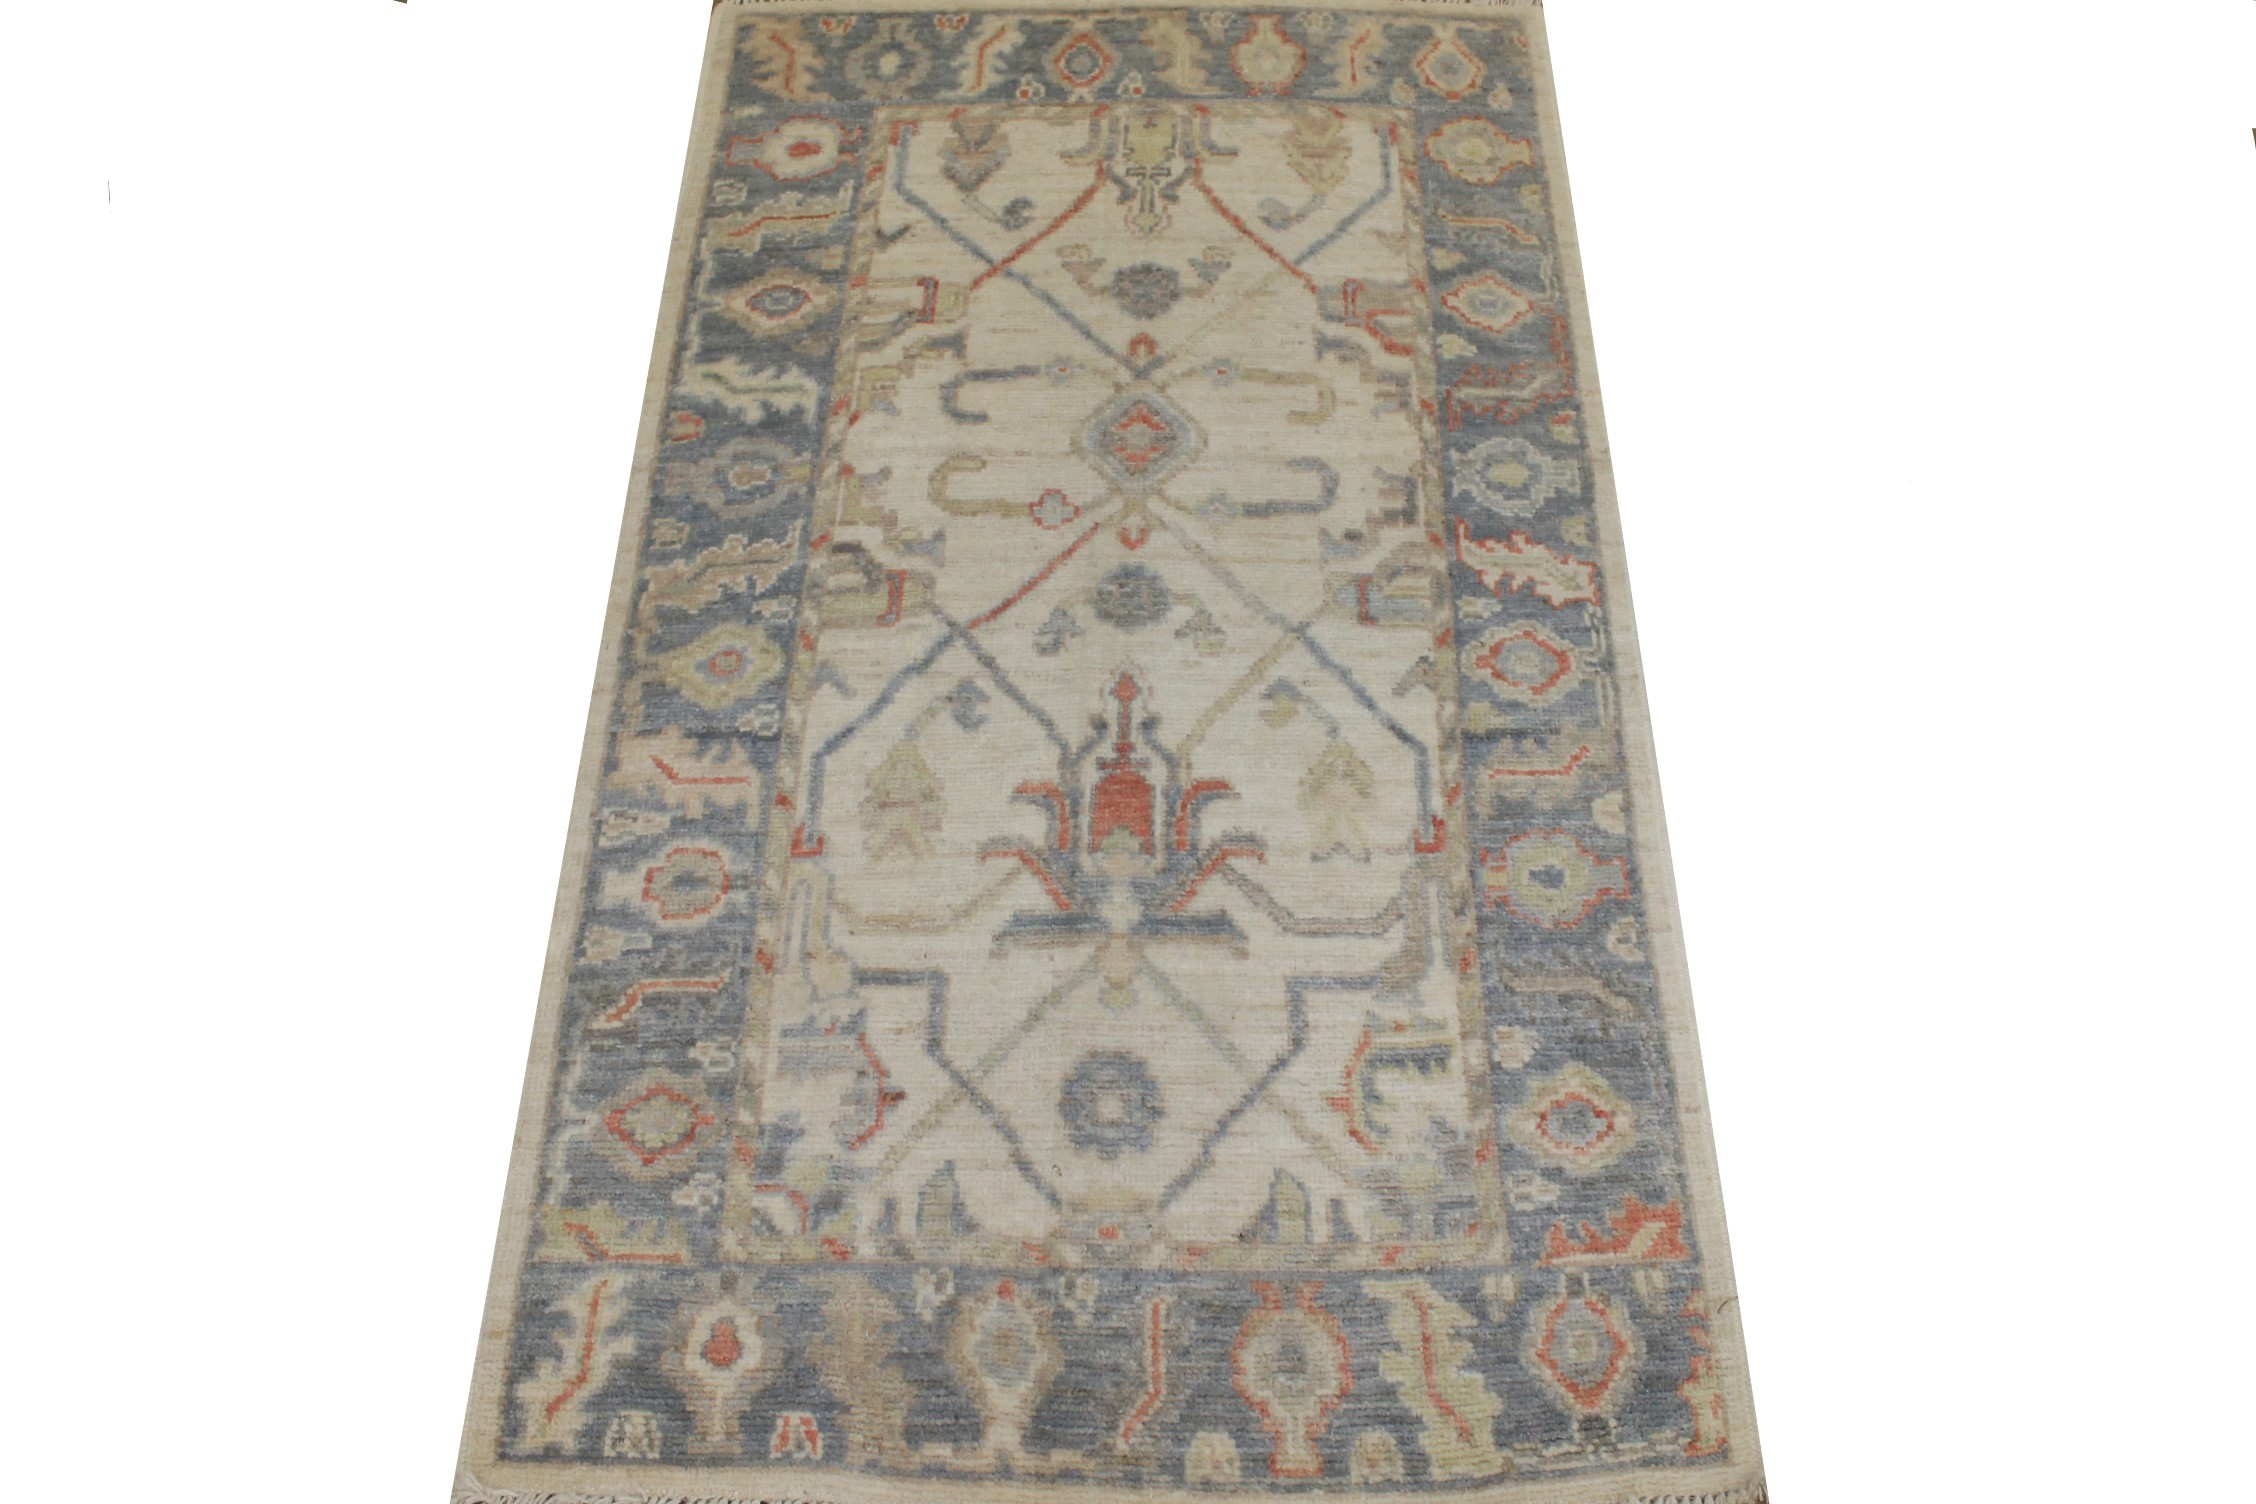 3x5 Oushak Hand Knotted Wool Area Rug - MR025413